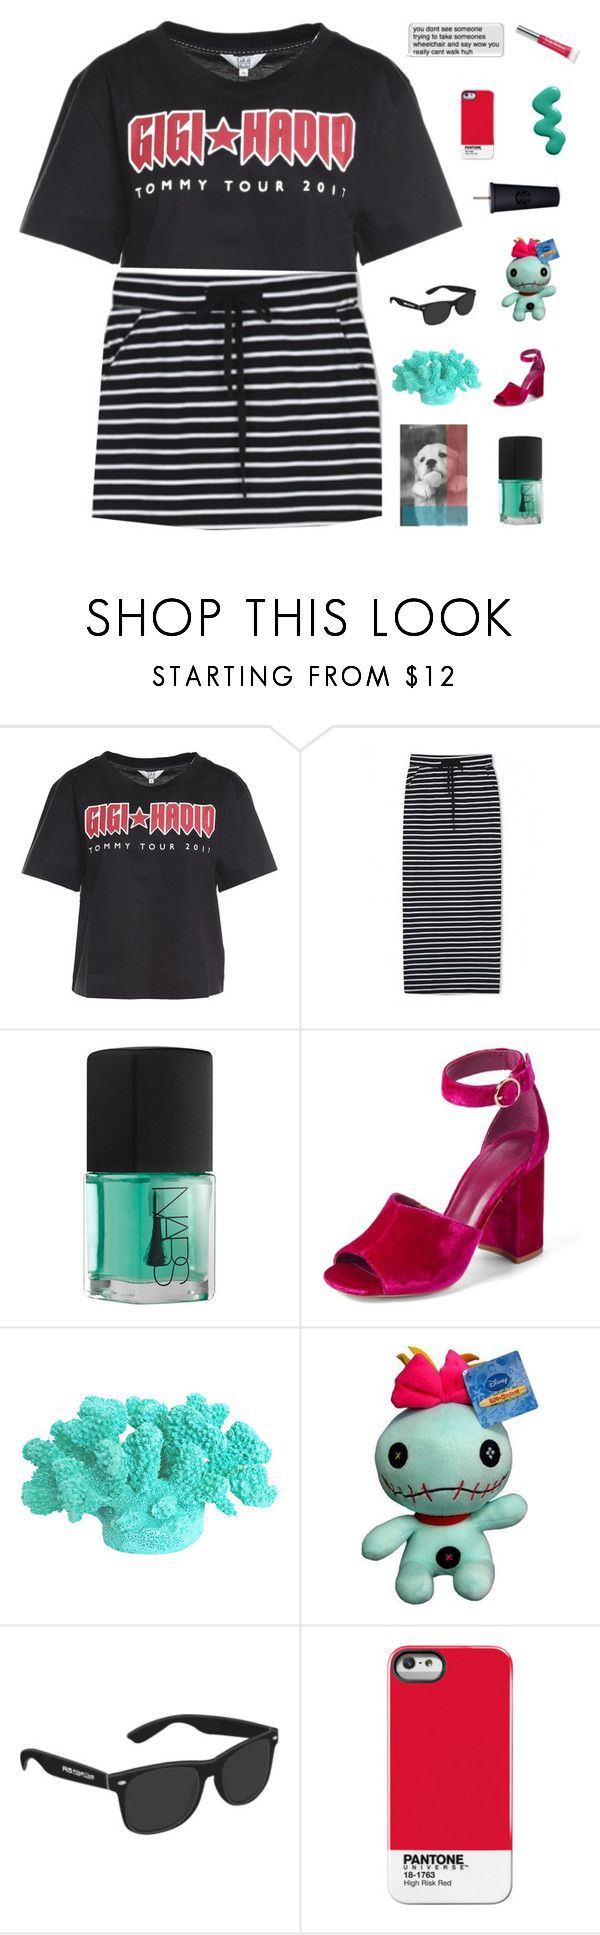 """""""♡ we came here to shop and we came here to flirt"""" by deli-lemonade ❤ liked on Polyvore featuring WithChic, NARS Cosmetics, Joie, Trish McEvoy and kats13k"""